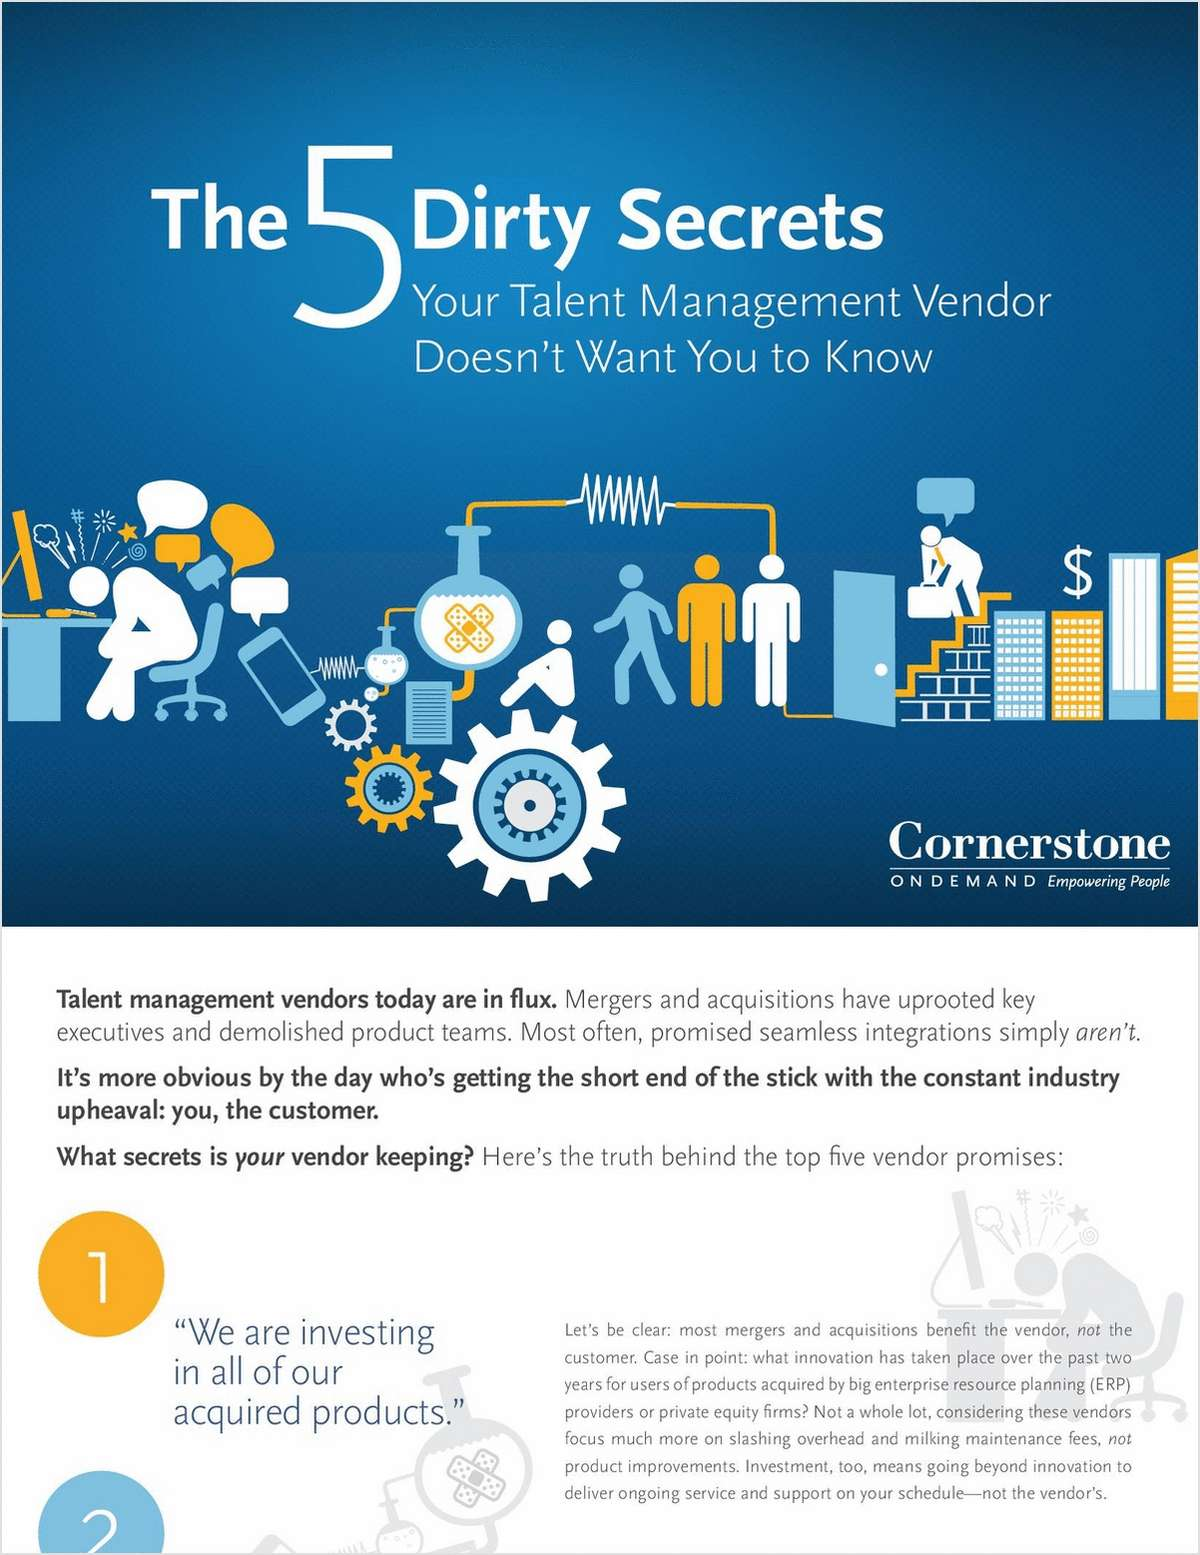 The 5 Dirty Secrets Your Talent Management Vendor Doesn't Want You to Know